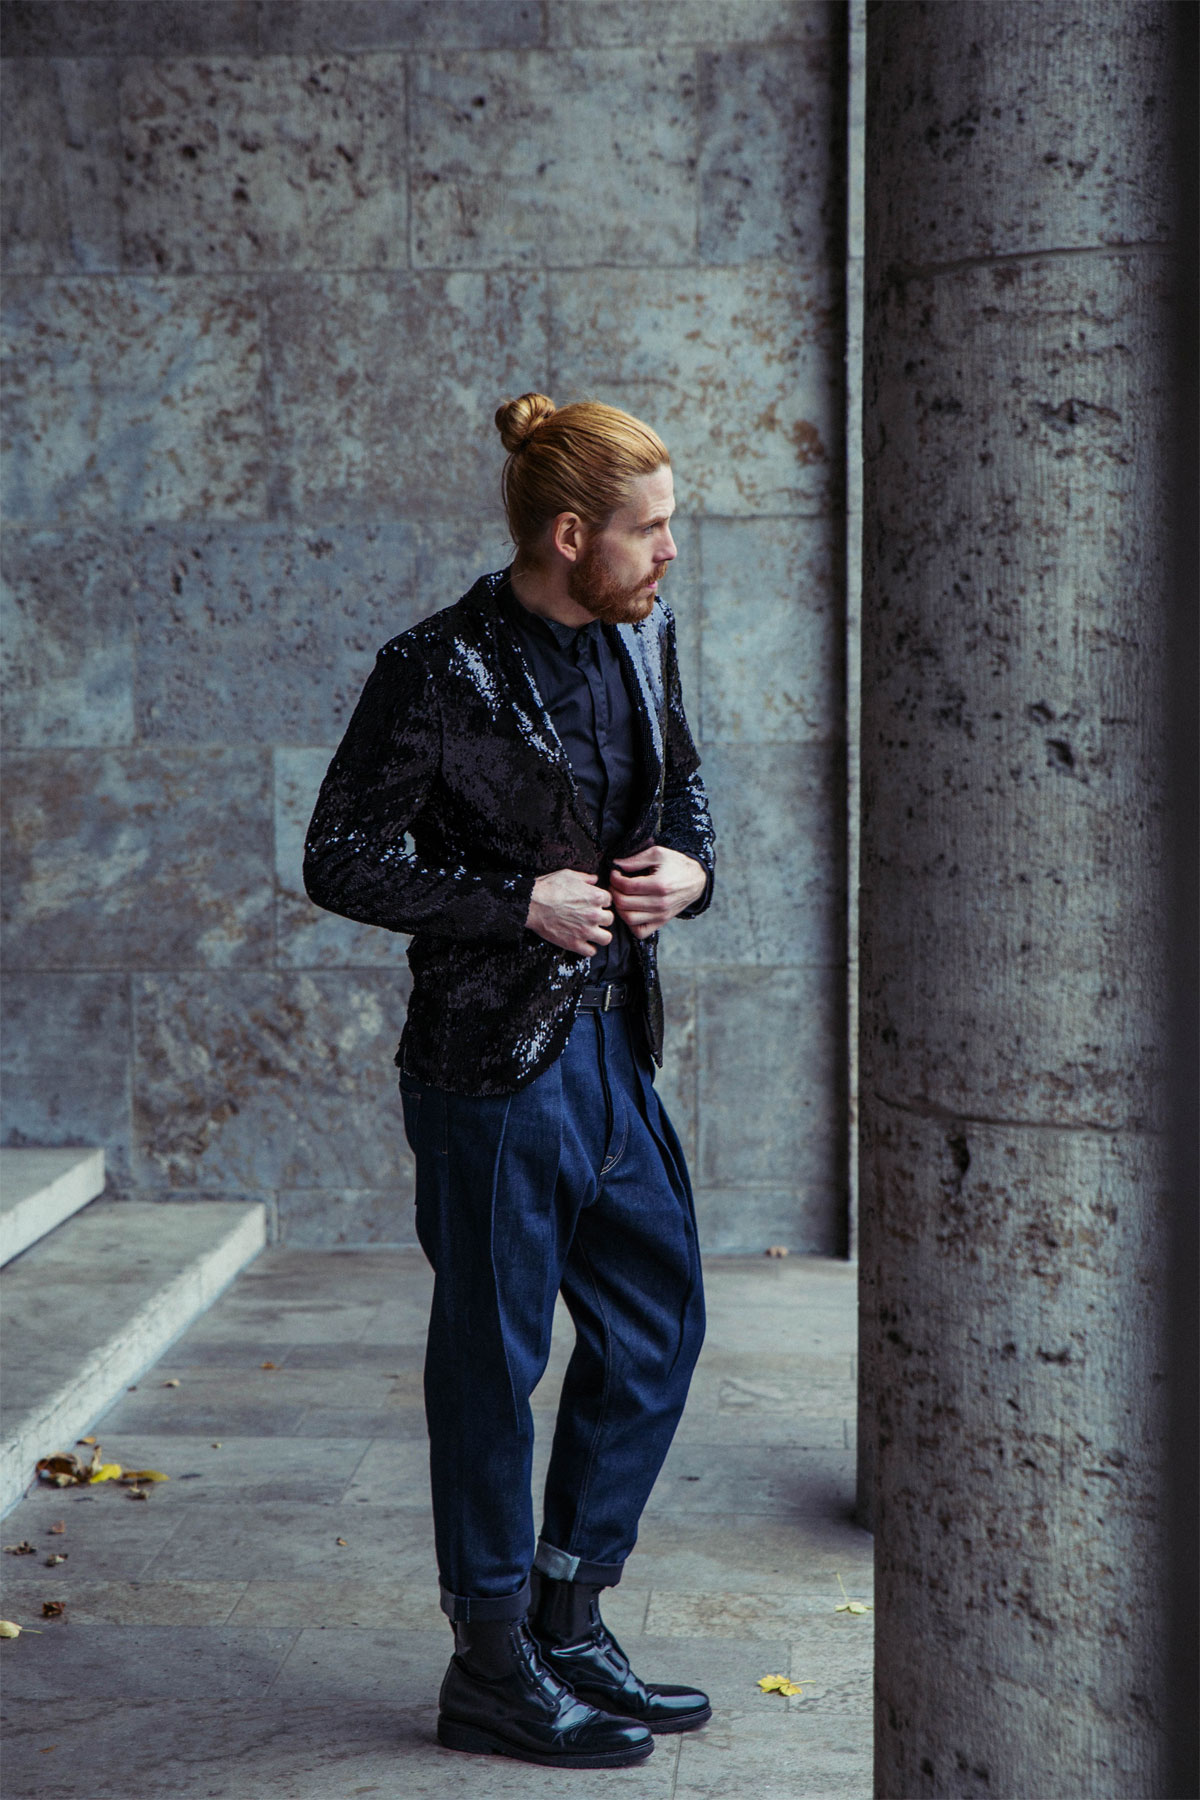 Malefashionblog-Influencer-Style-Silvester-Sakko-Jeans-Boots-Party